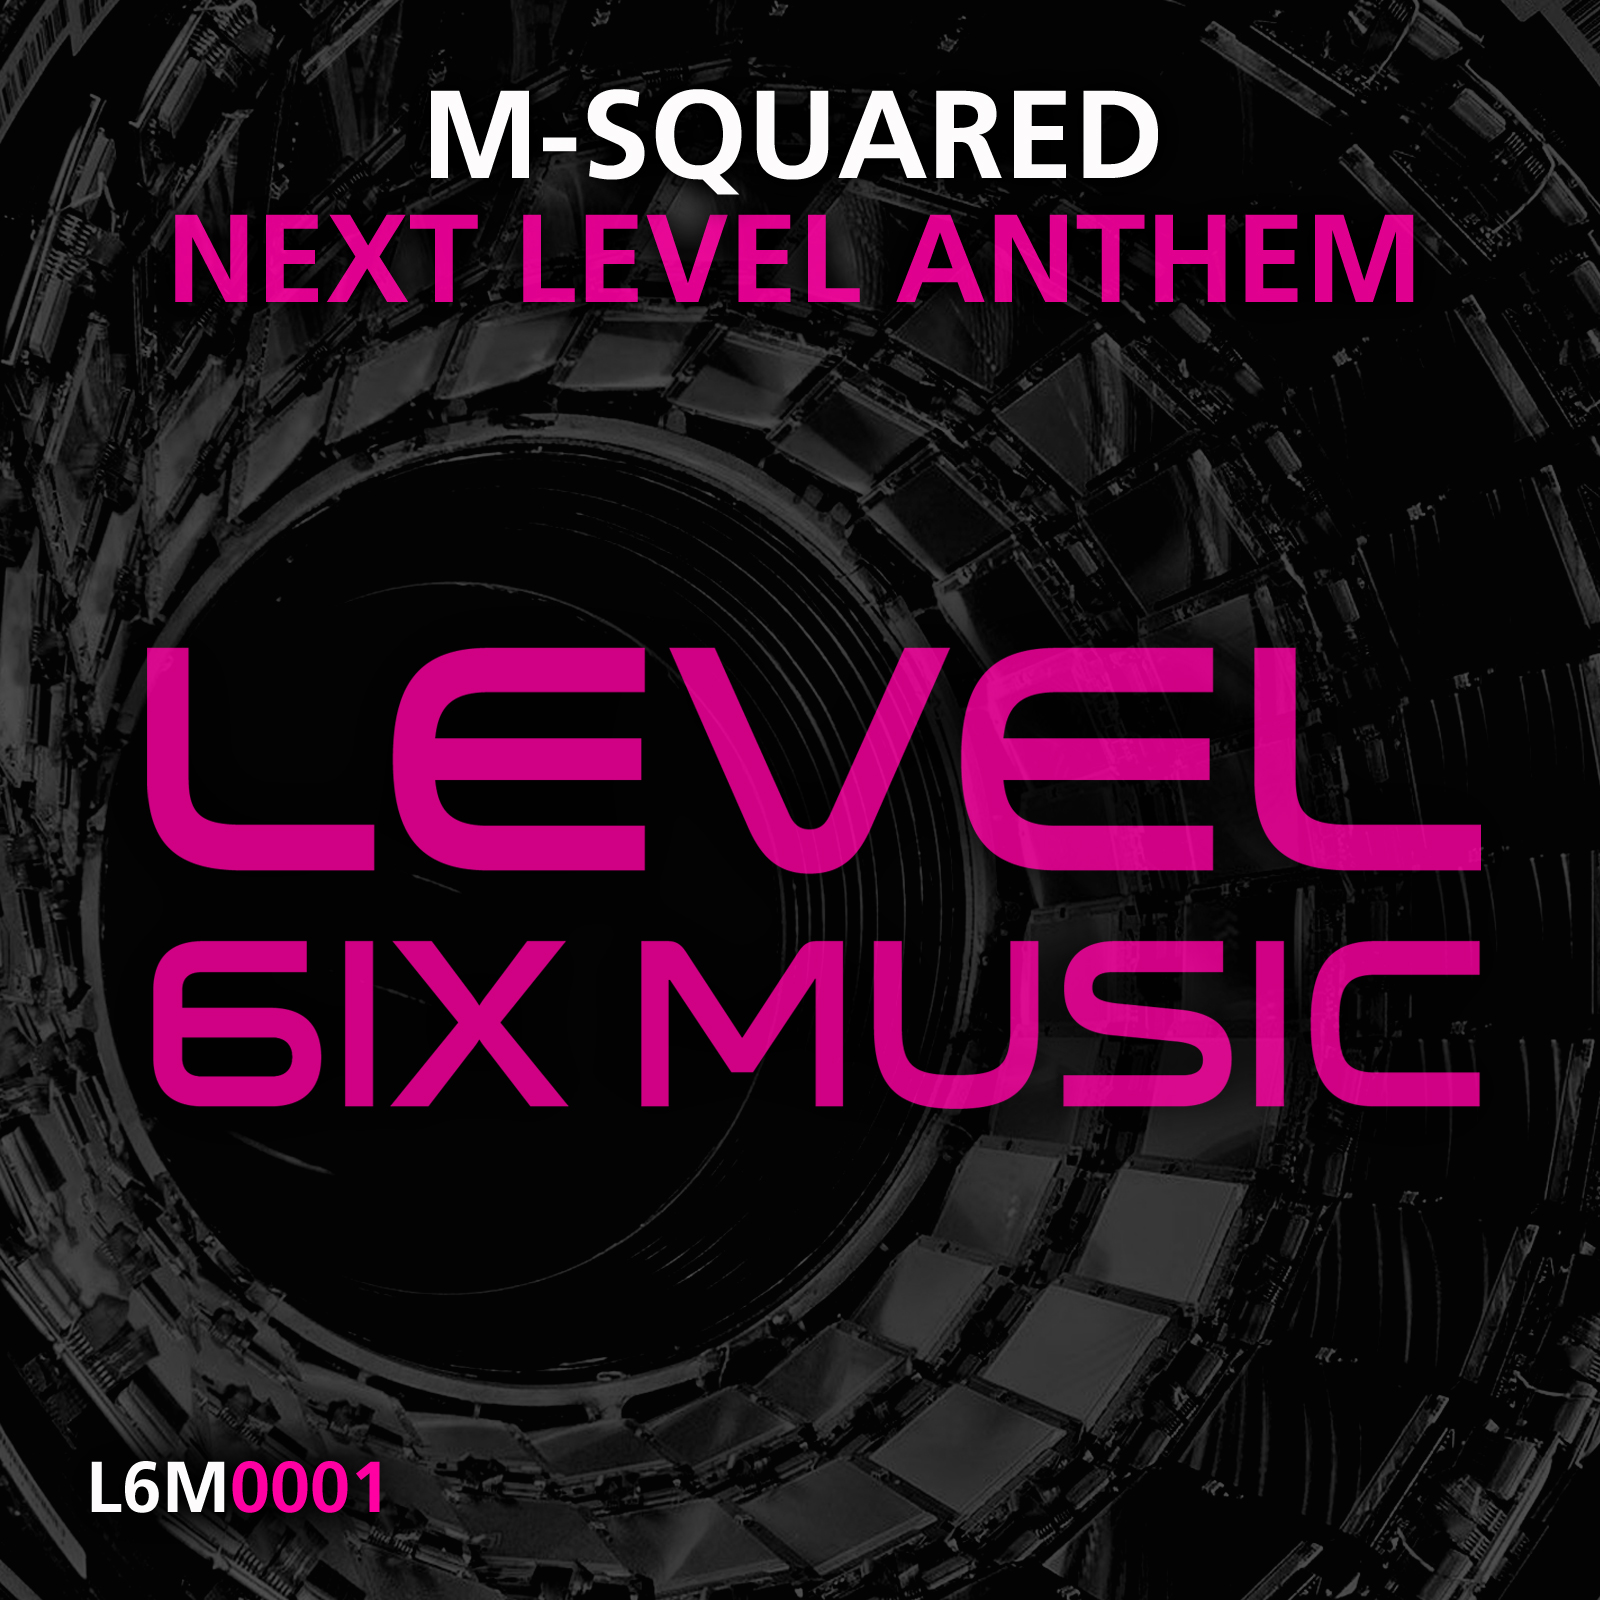 M-Squared Next Level Anthem Artwork